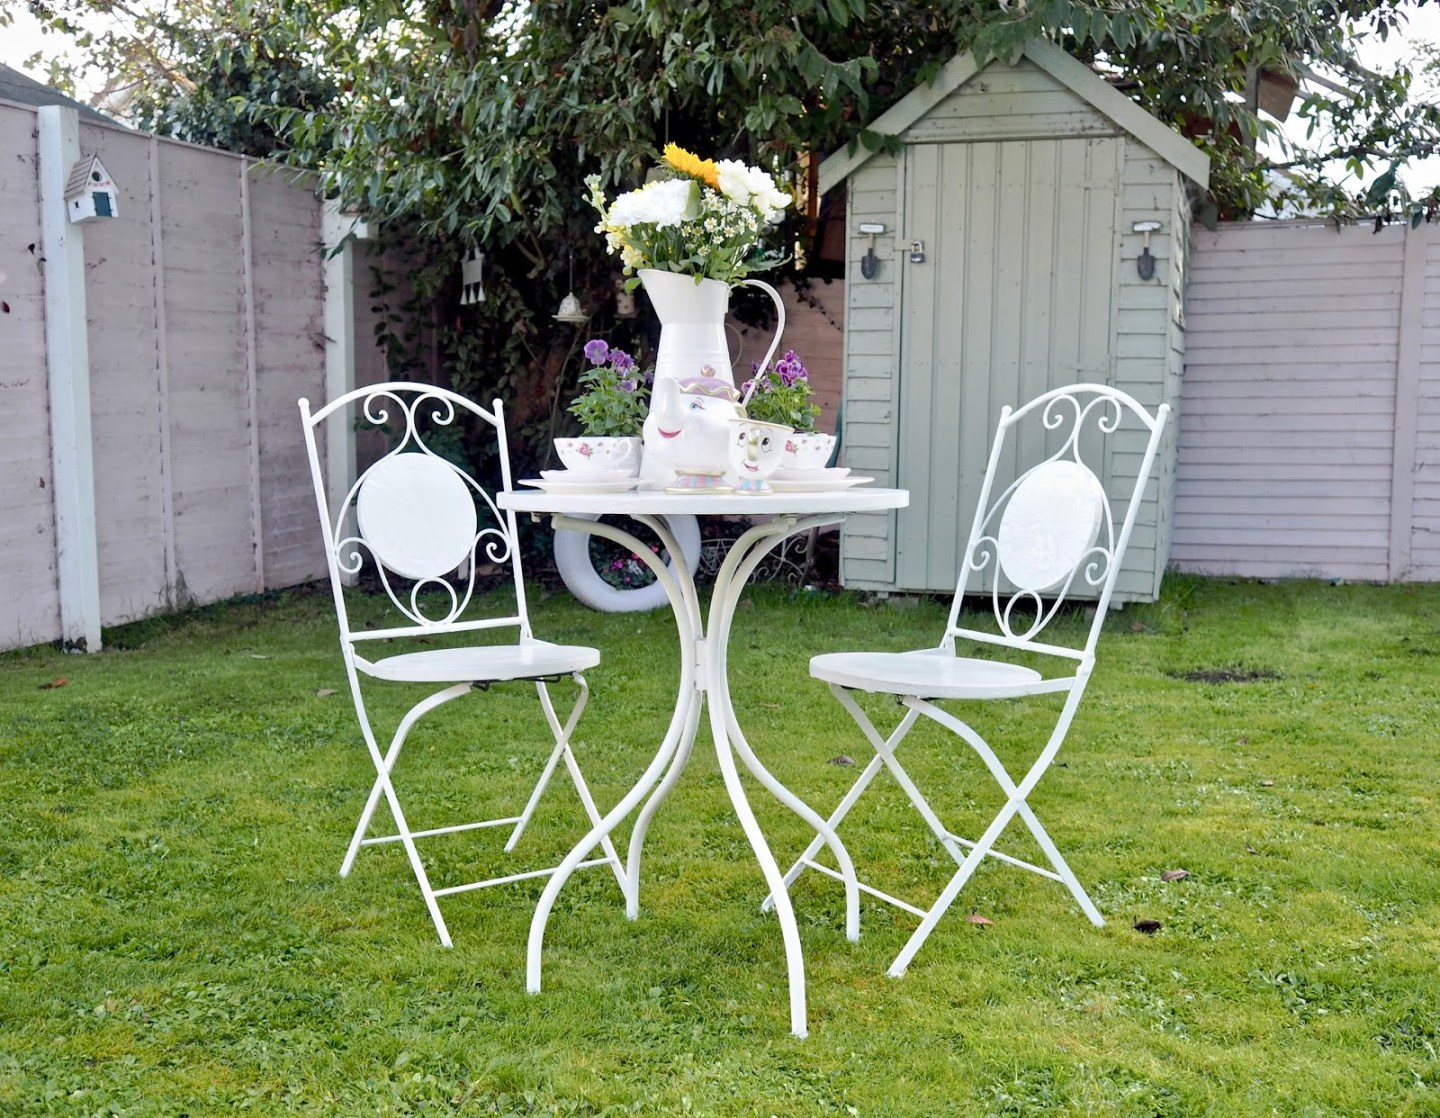 10 garden DIYs to brighten your outdoor space